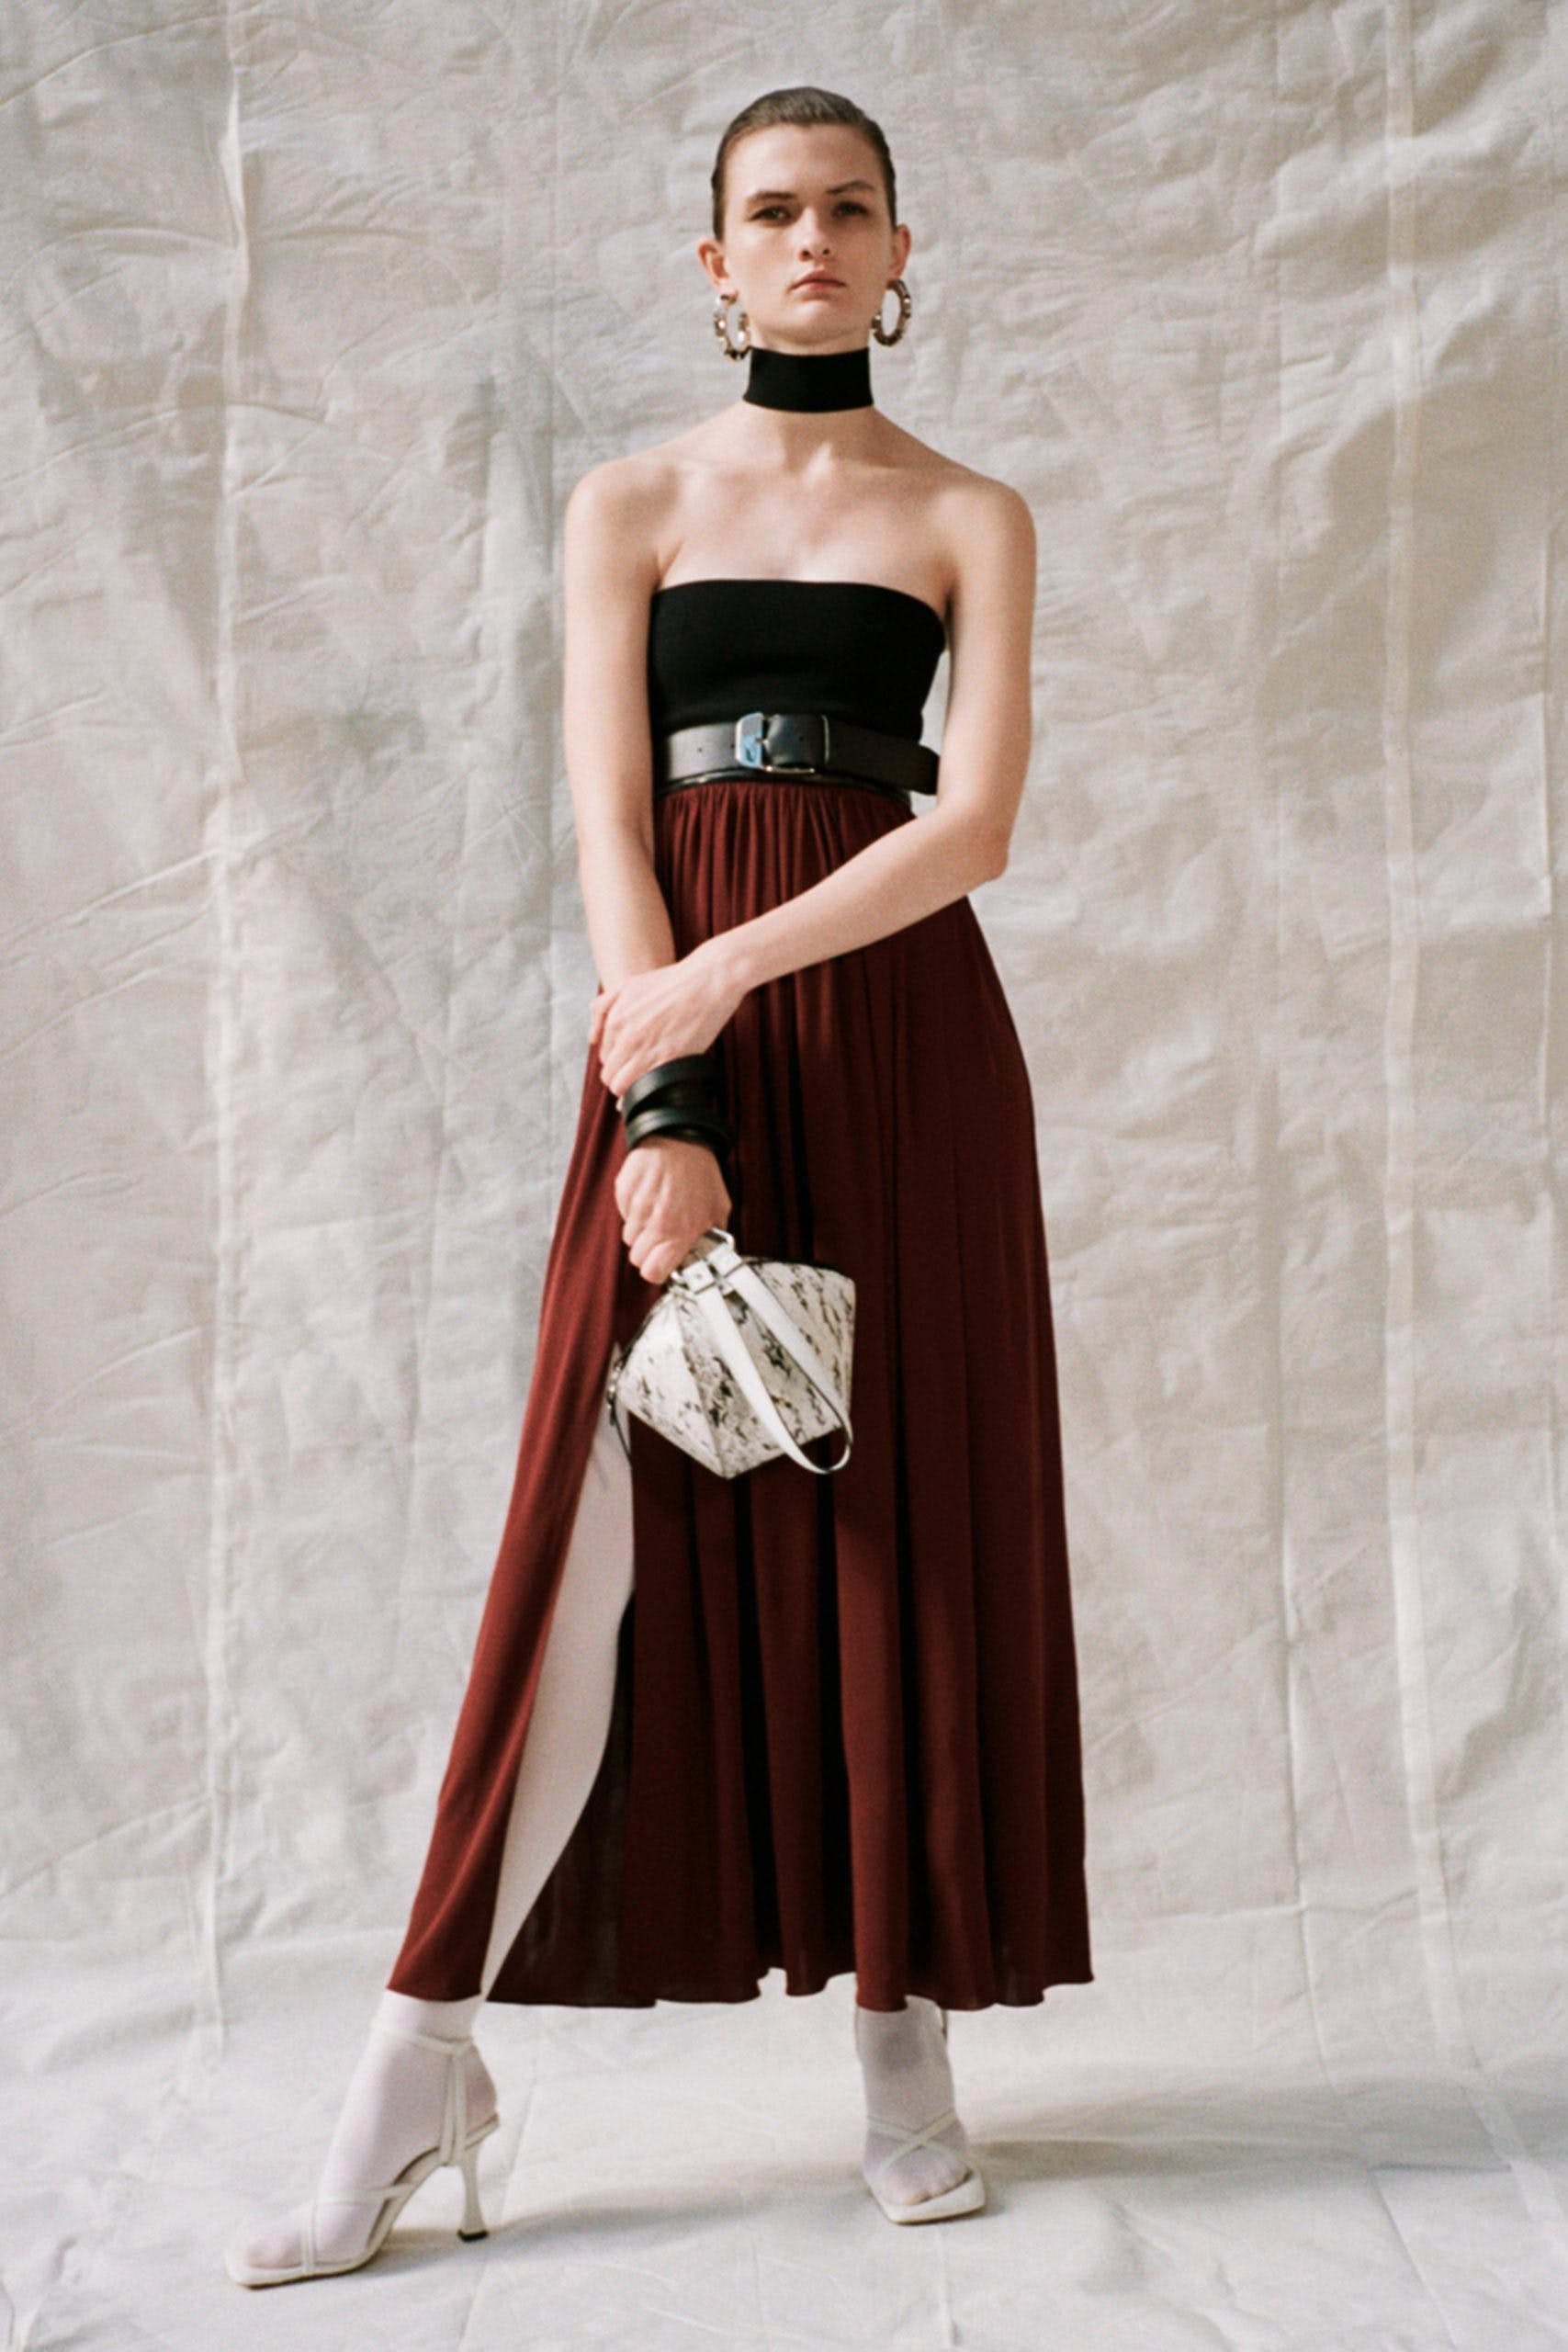 proenza schouler pf20 black tube top black belt red high waisted pleated maxi slit skirt white strap heels